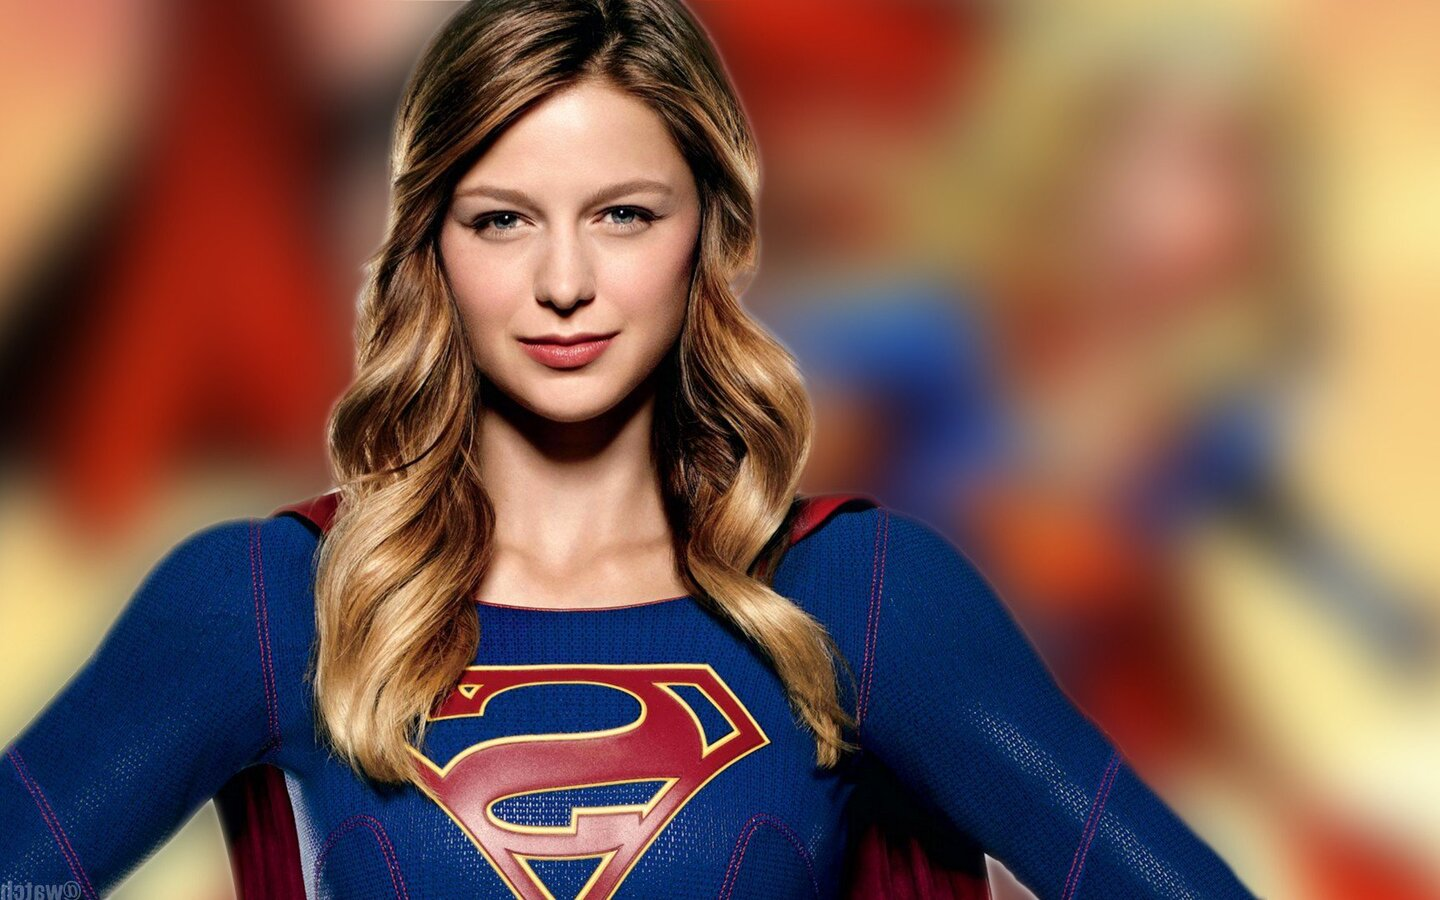 Download Supergirl Melissa Benoist Season 3 2017 1440x900 ...